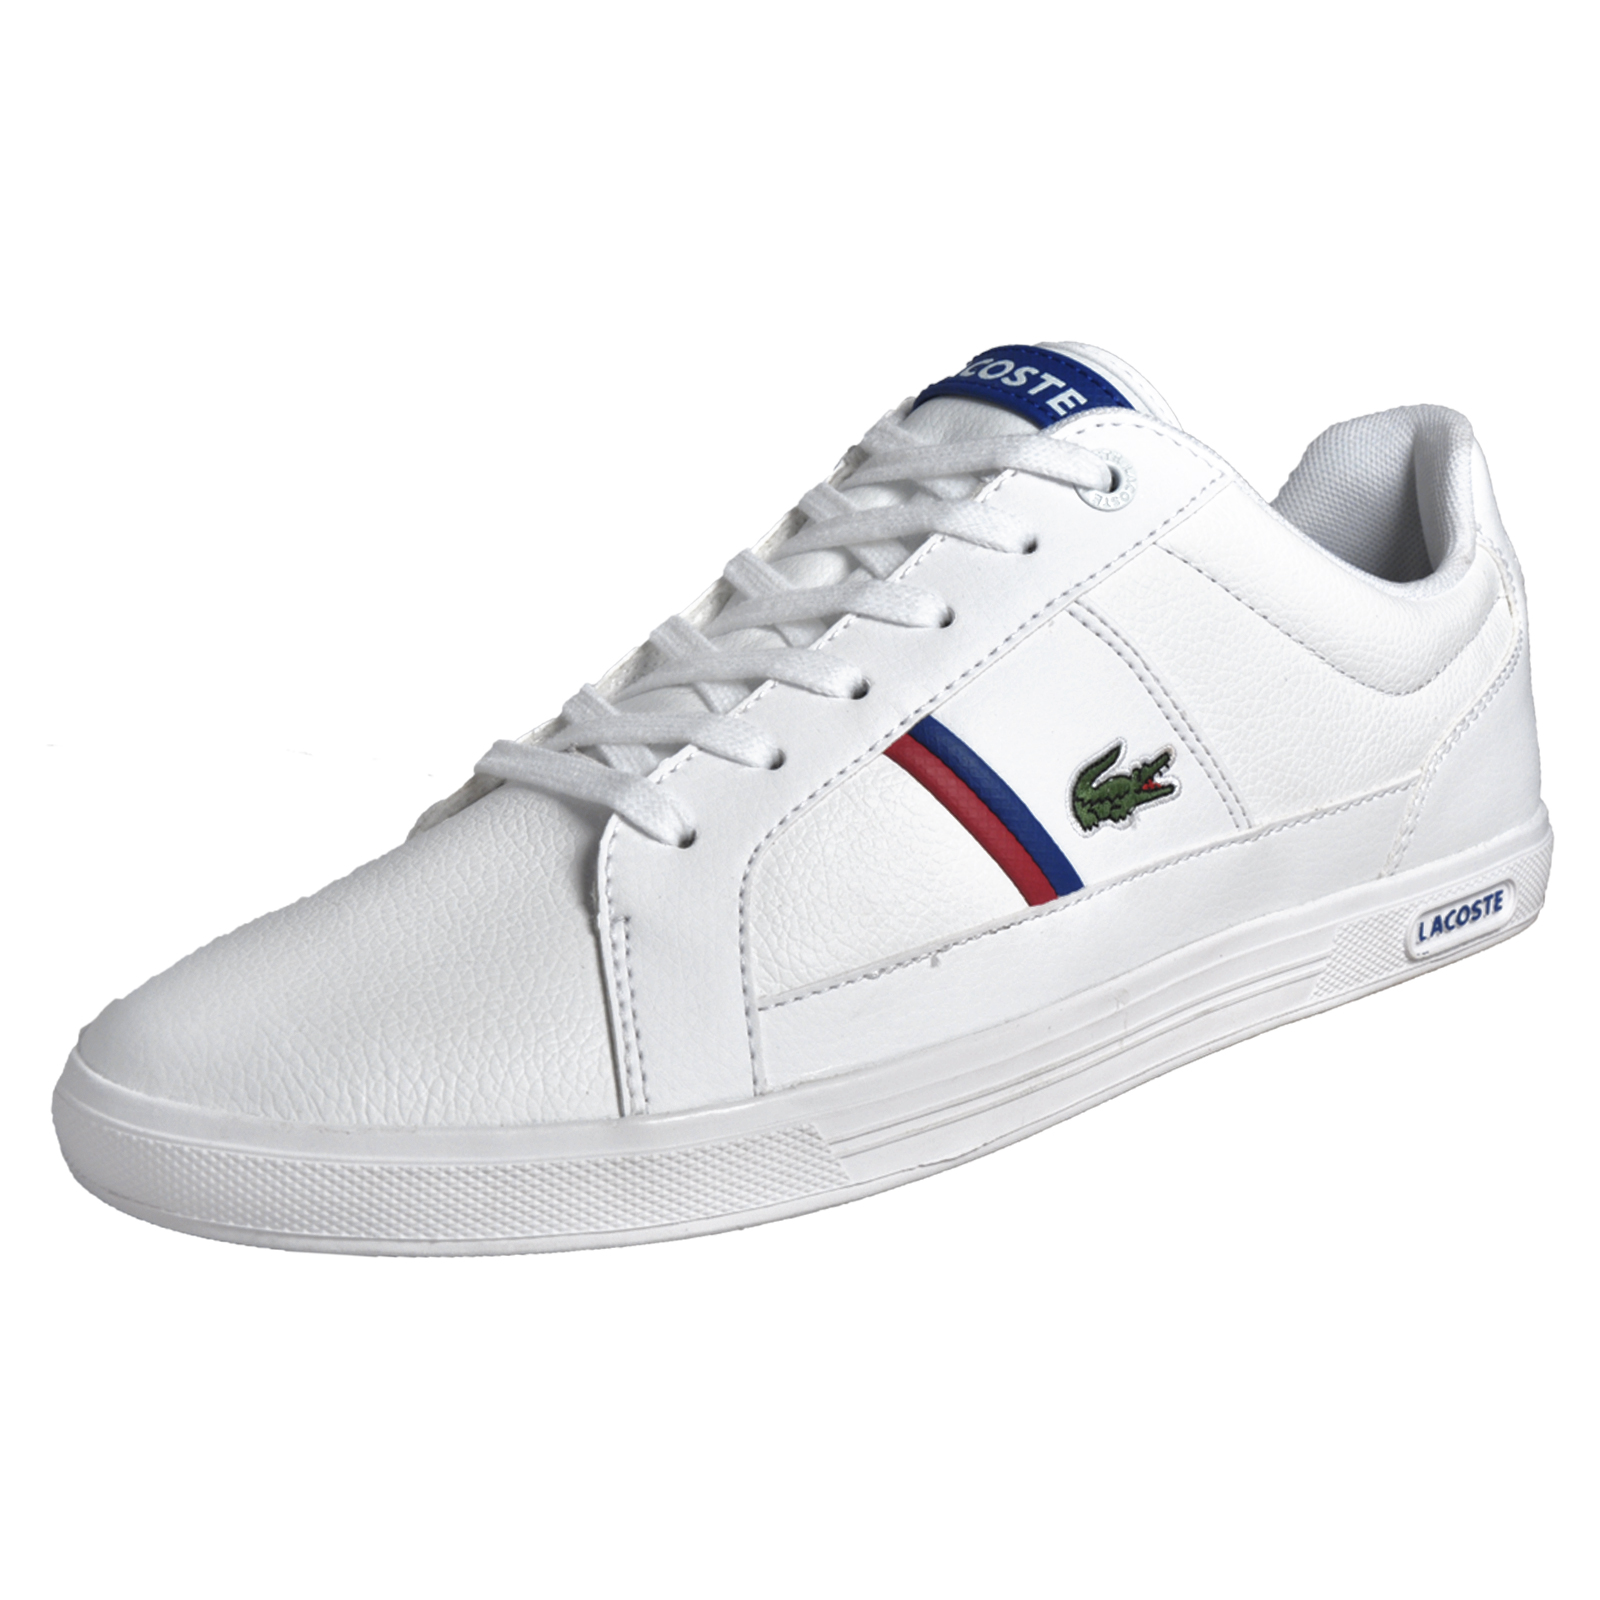 30f79ab20 Details about Lacoste Europa TCL Mens Classic Casual Designer Leather  Trainers White